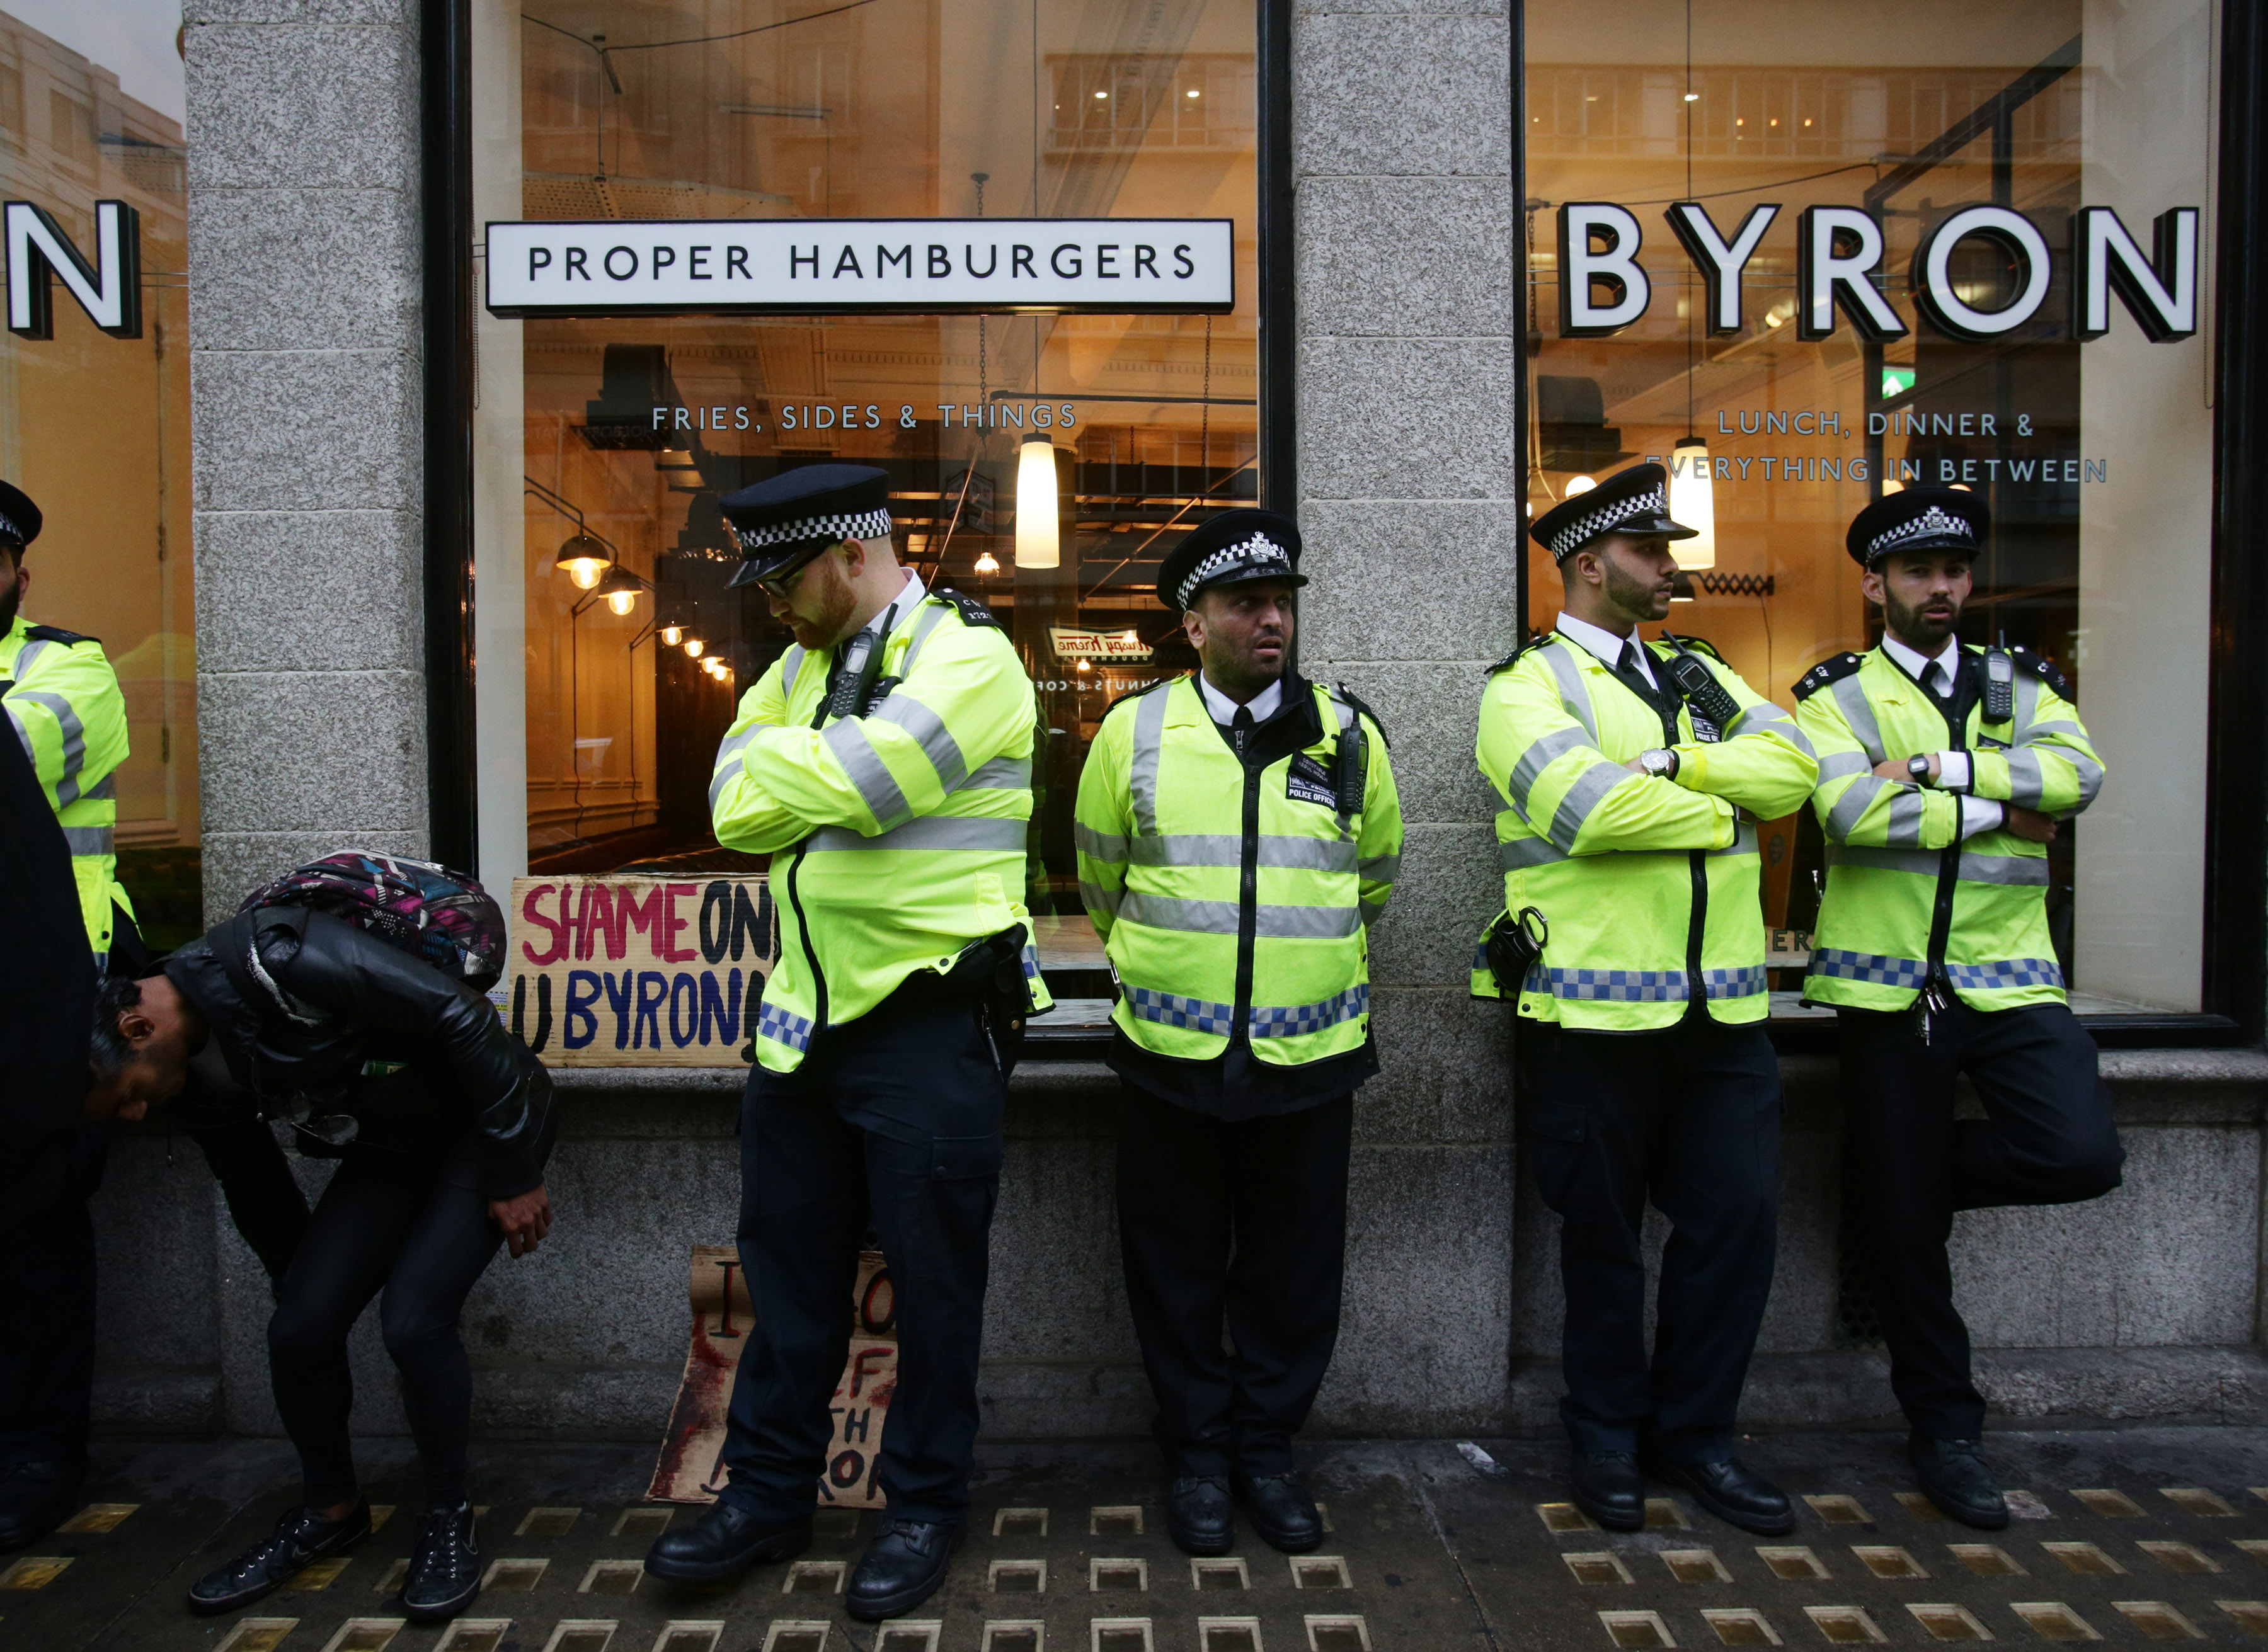 Byron workers held. Police officers stand outside a Byron restaurant in Holborn, central London, as people protest after dozens of workers at the burger chain were arrested in a swoop by immigration officials, on Monday August 1, 2016